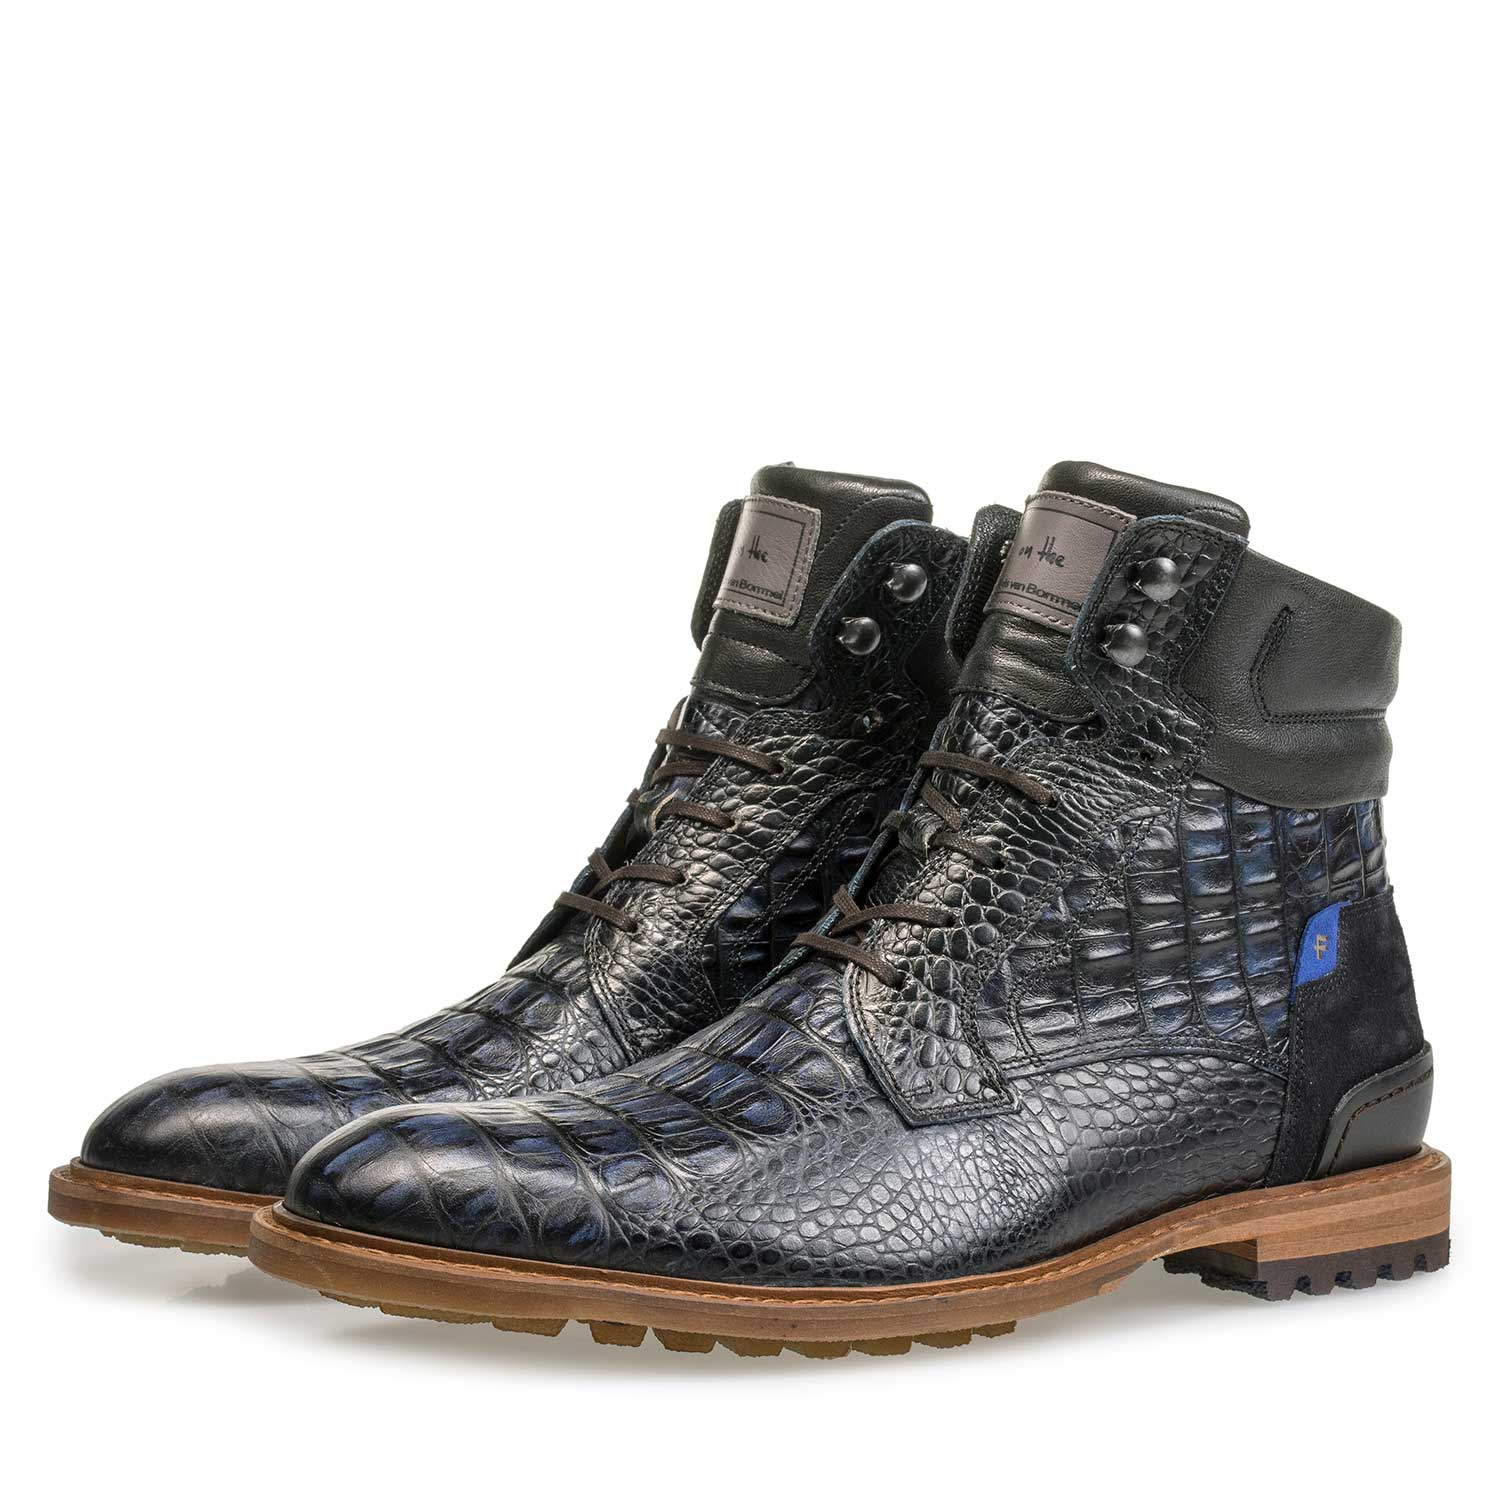 10234/13 - Blue calf leather lace boot with croco print